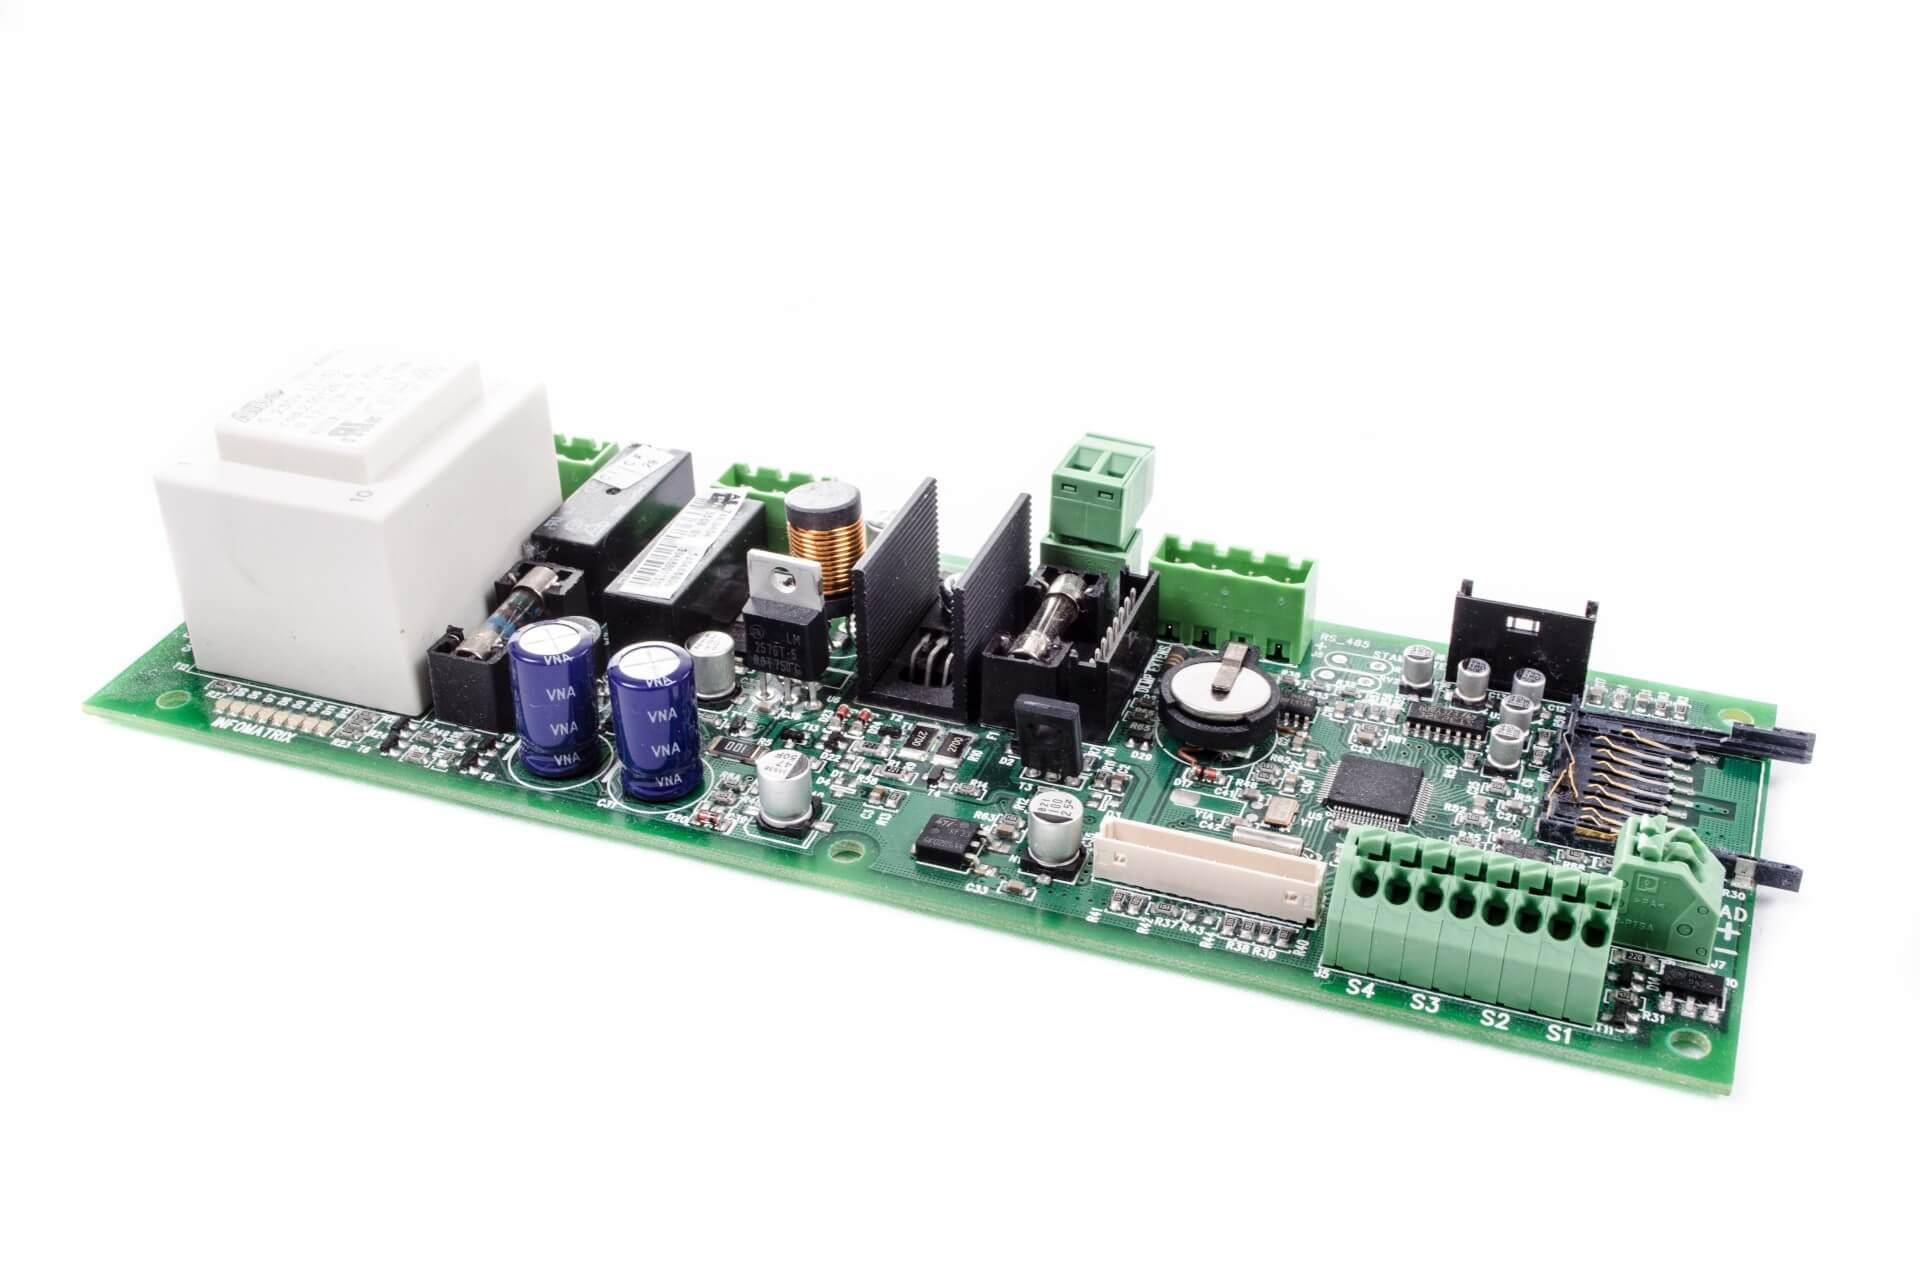 motherboard for a computer